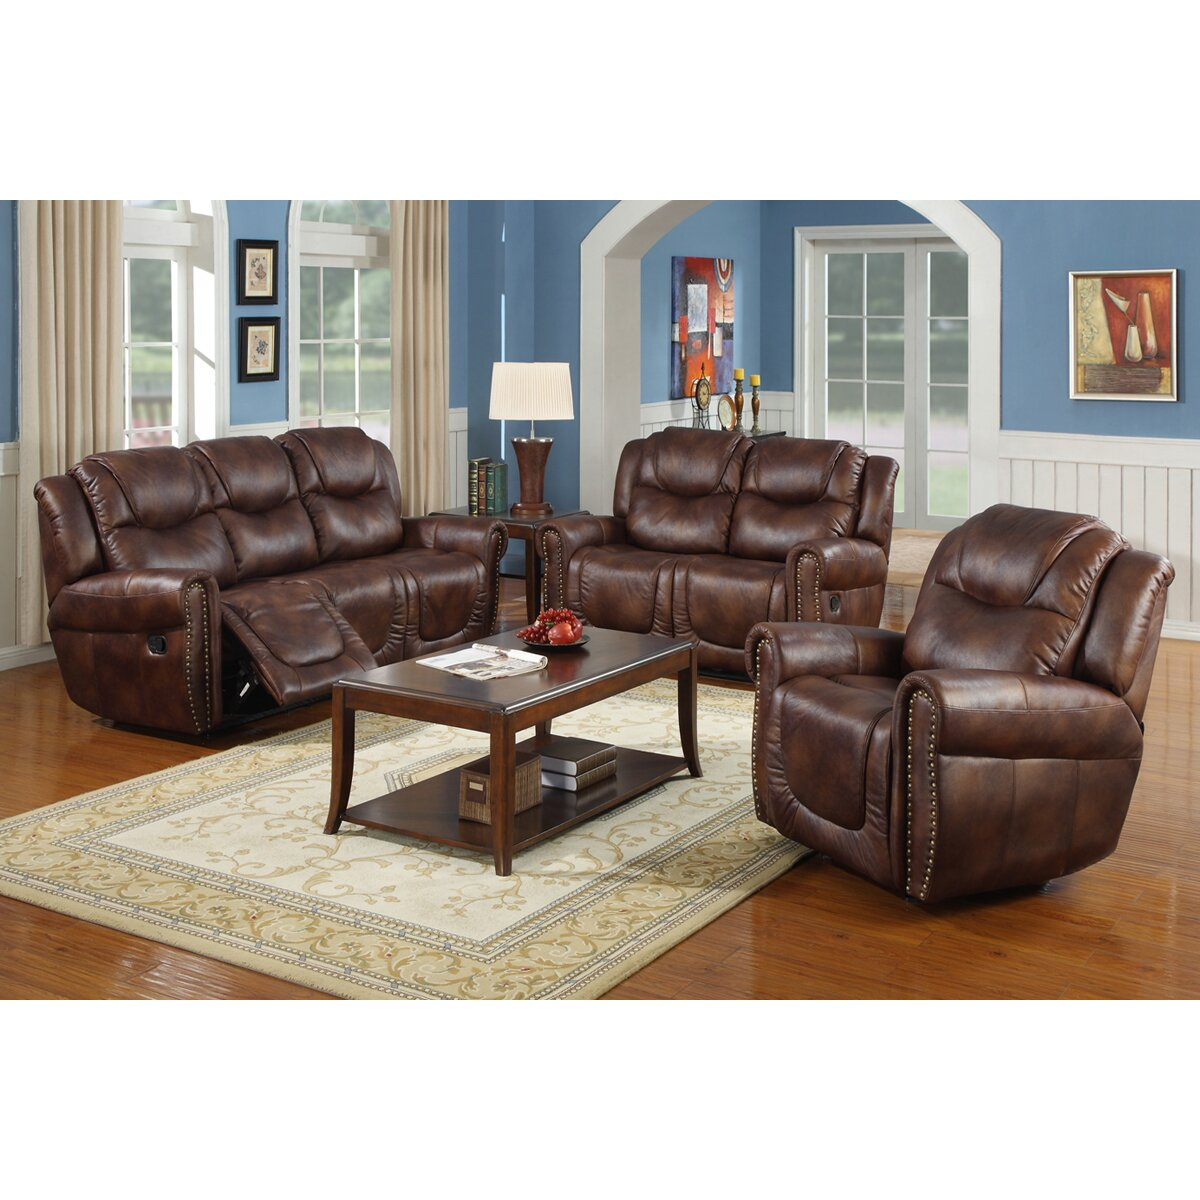 toledo 3 piece bonded leather reclining living room sofa set wayfair. Black Bedroom Furniture Sets. Home Design Ideas